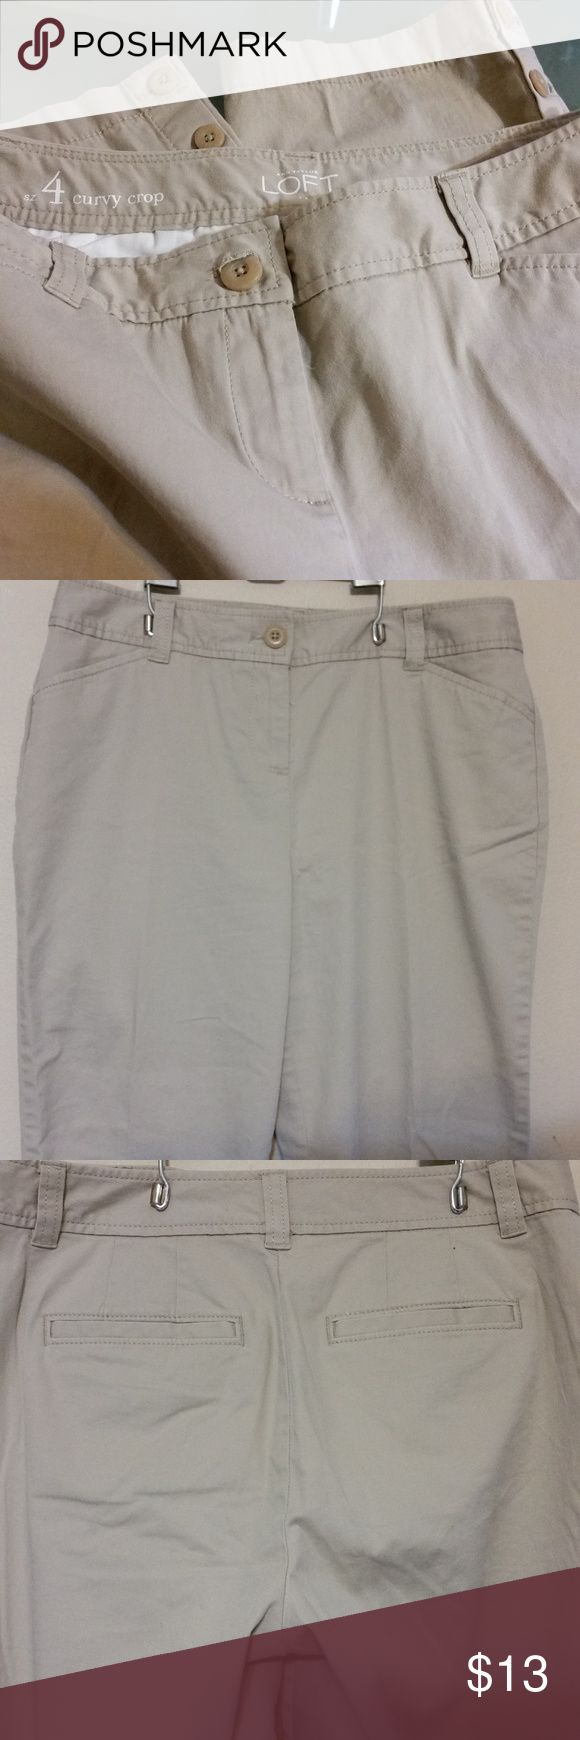 """Ann Taylor Loft Women's Capri pants """"Curvy Crop"""" 97% Cotton 2% Spandex.  Very good condition from Ann Taylor Loft.  4 pockets with Stretch. Cute button detail on the bottom of the pant legs which are functioning buttons.  If you have any questions, please contact me.   Approximate Measurements: Waist: 29"""" Inseam: 24"""" Rise: 10"""" Length:  Top of side waist seam to hem:  33"""" Ann Taylor Loft Pants Capris"""